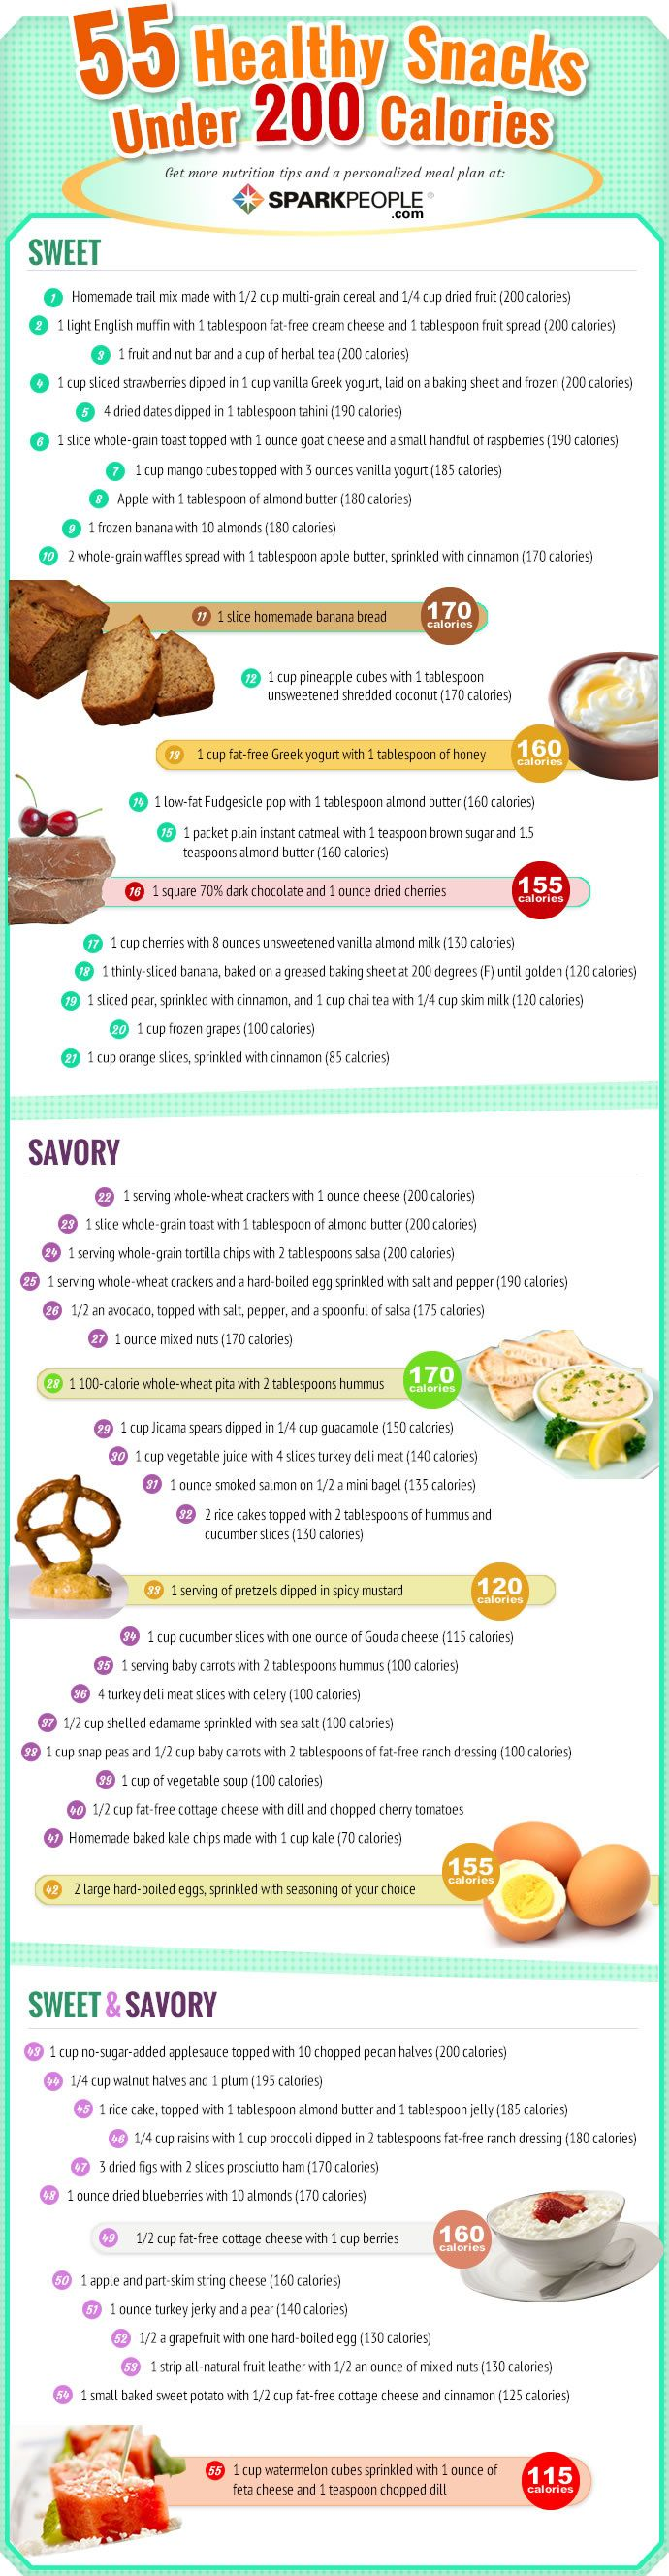 Healthy Snacks Under 200 CaloriesSocialCafe Magazine